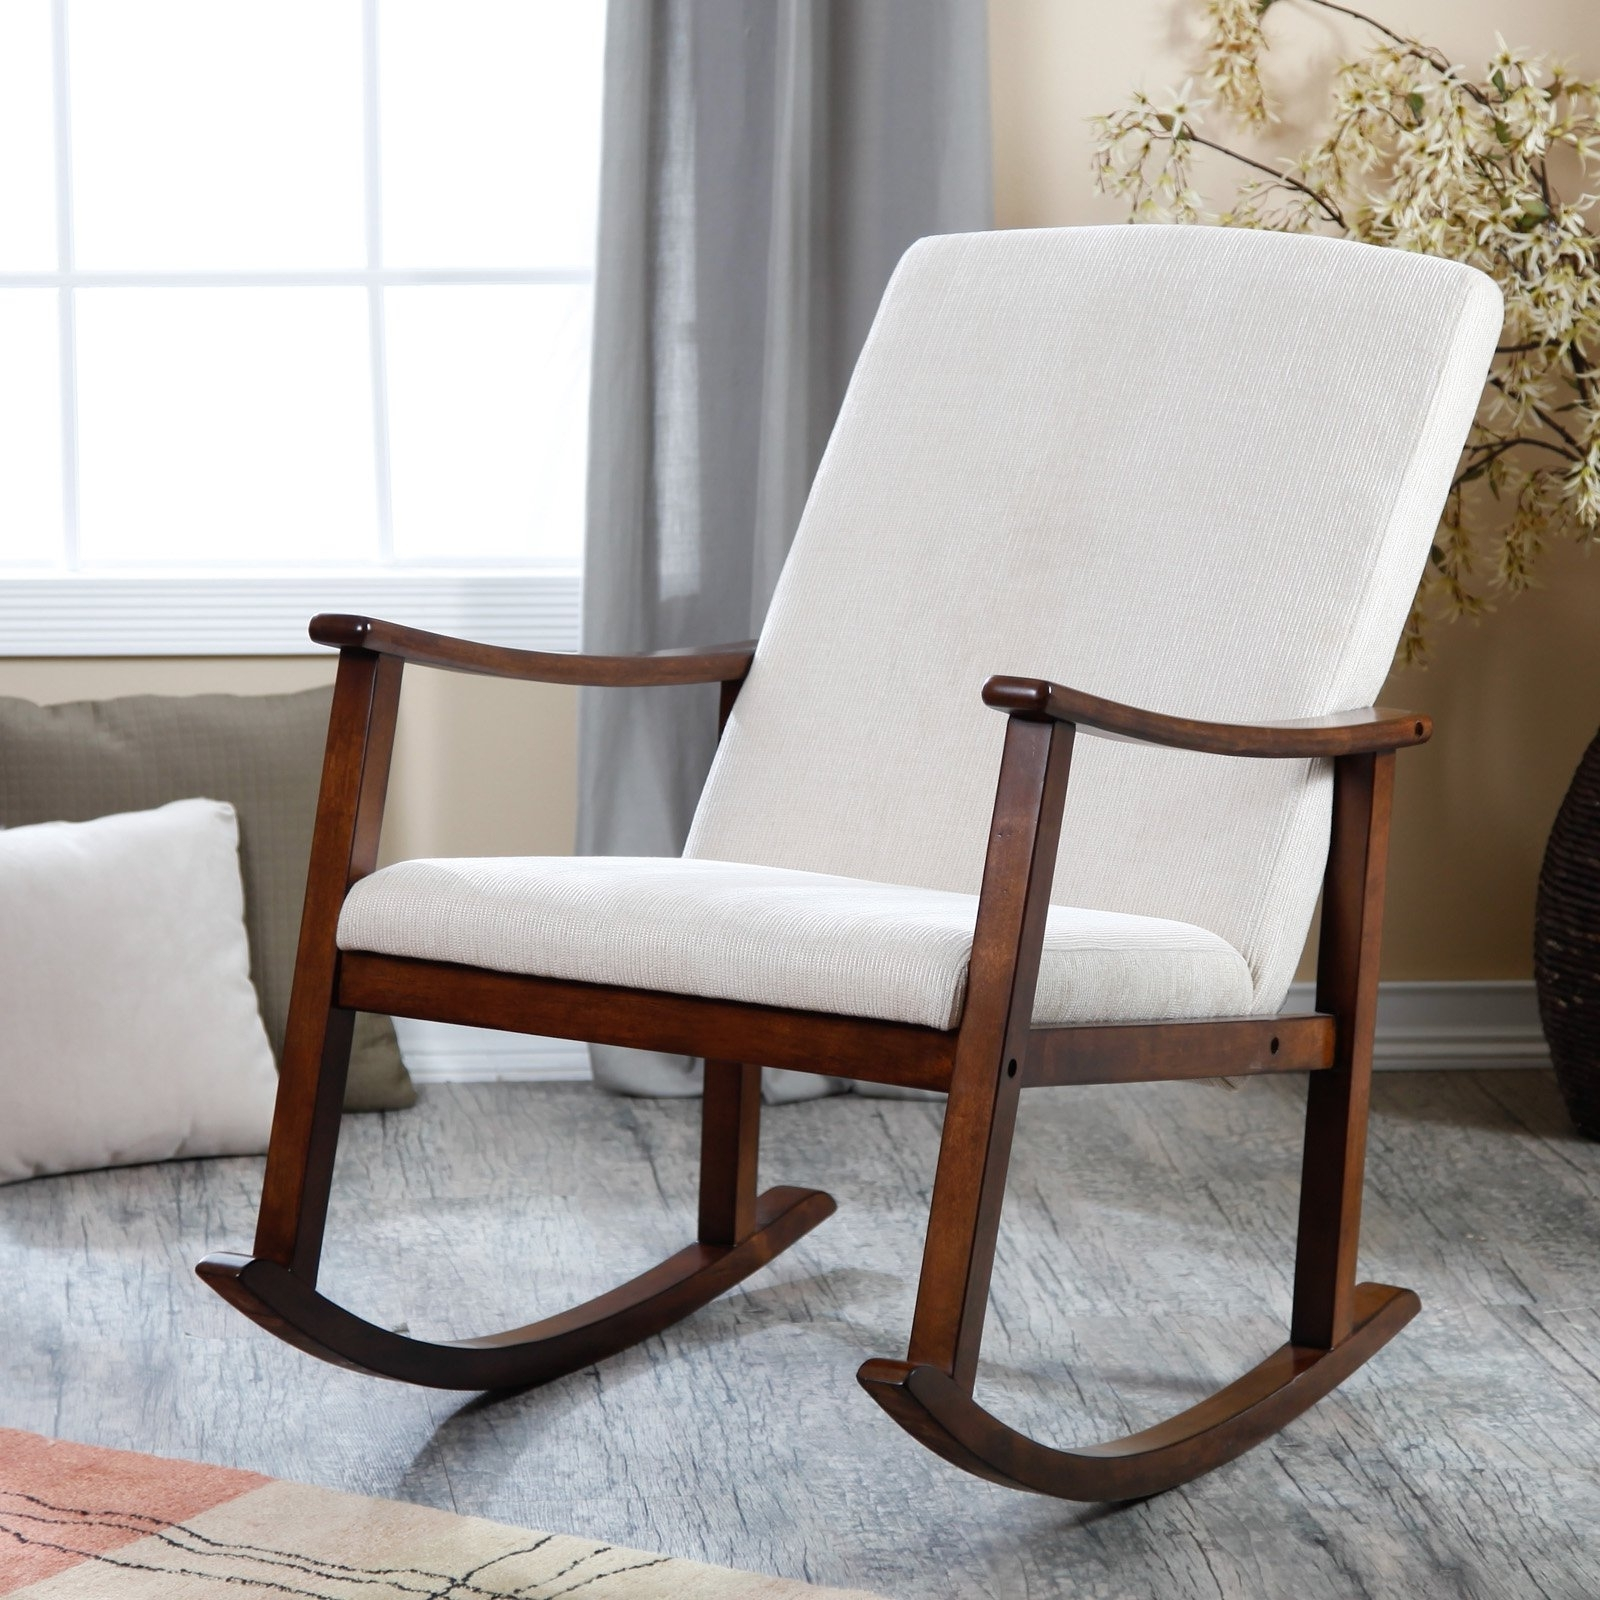 small rocking chairs office chair lift cylinder 2019 popular for spaces featured photo of